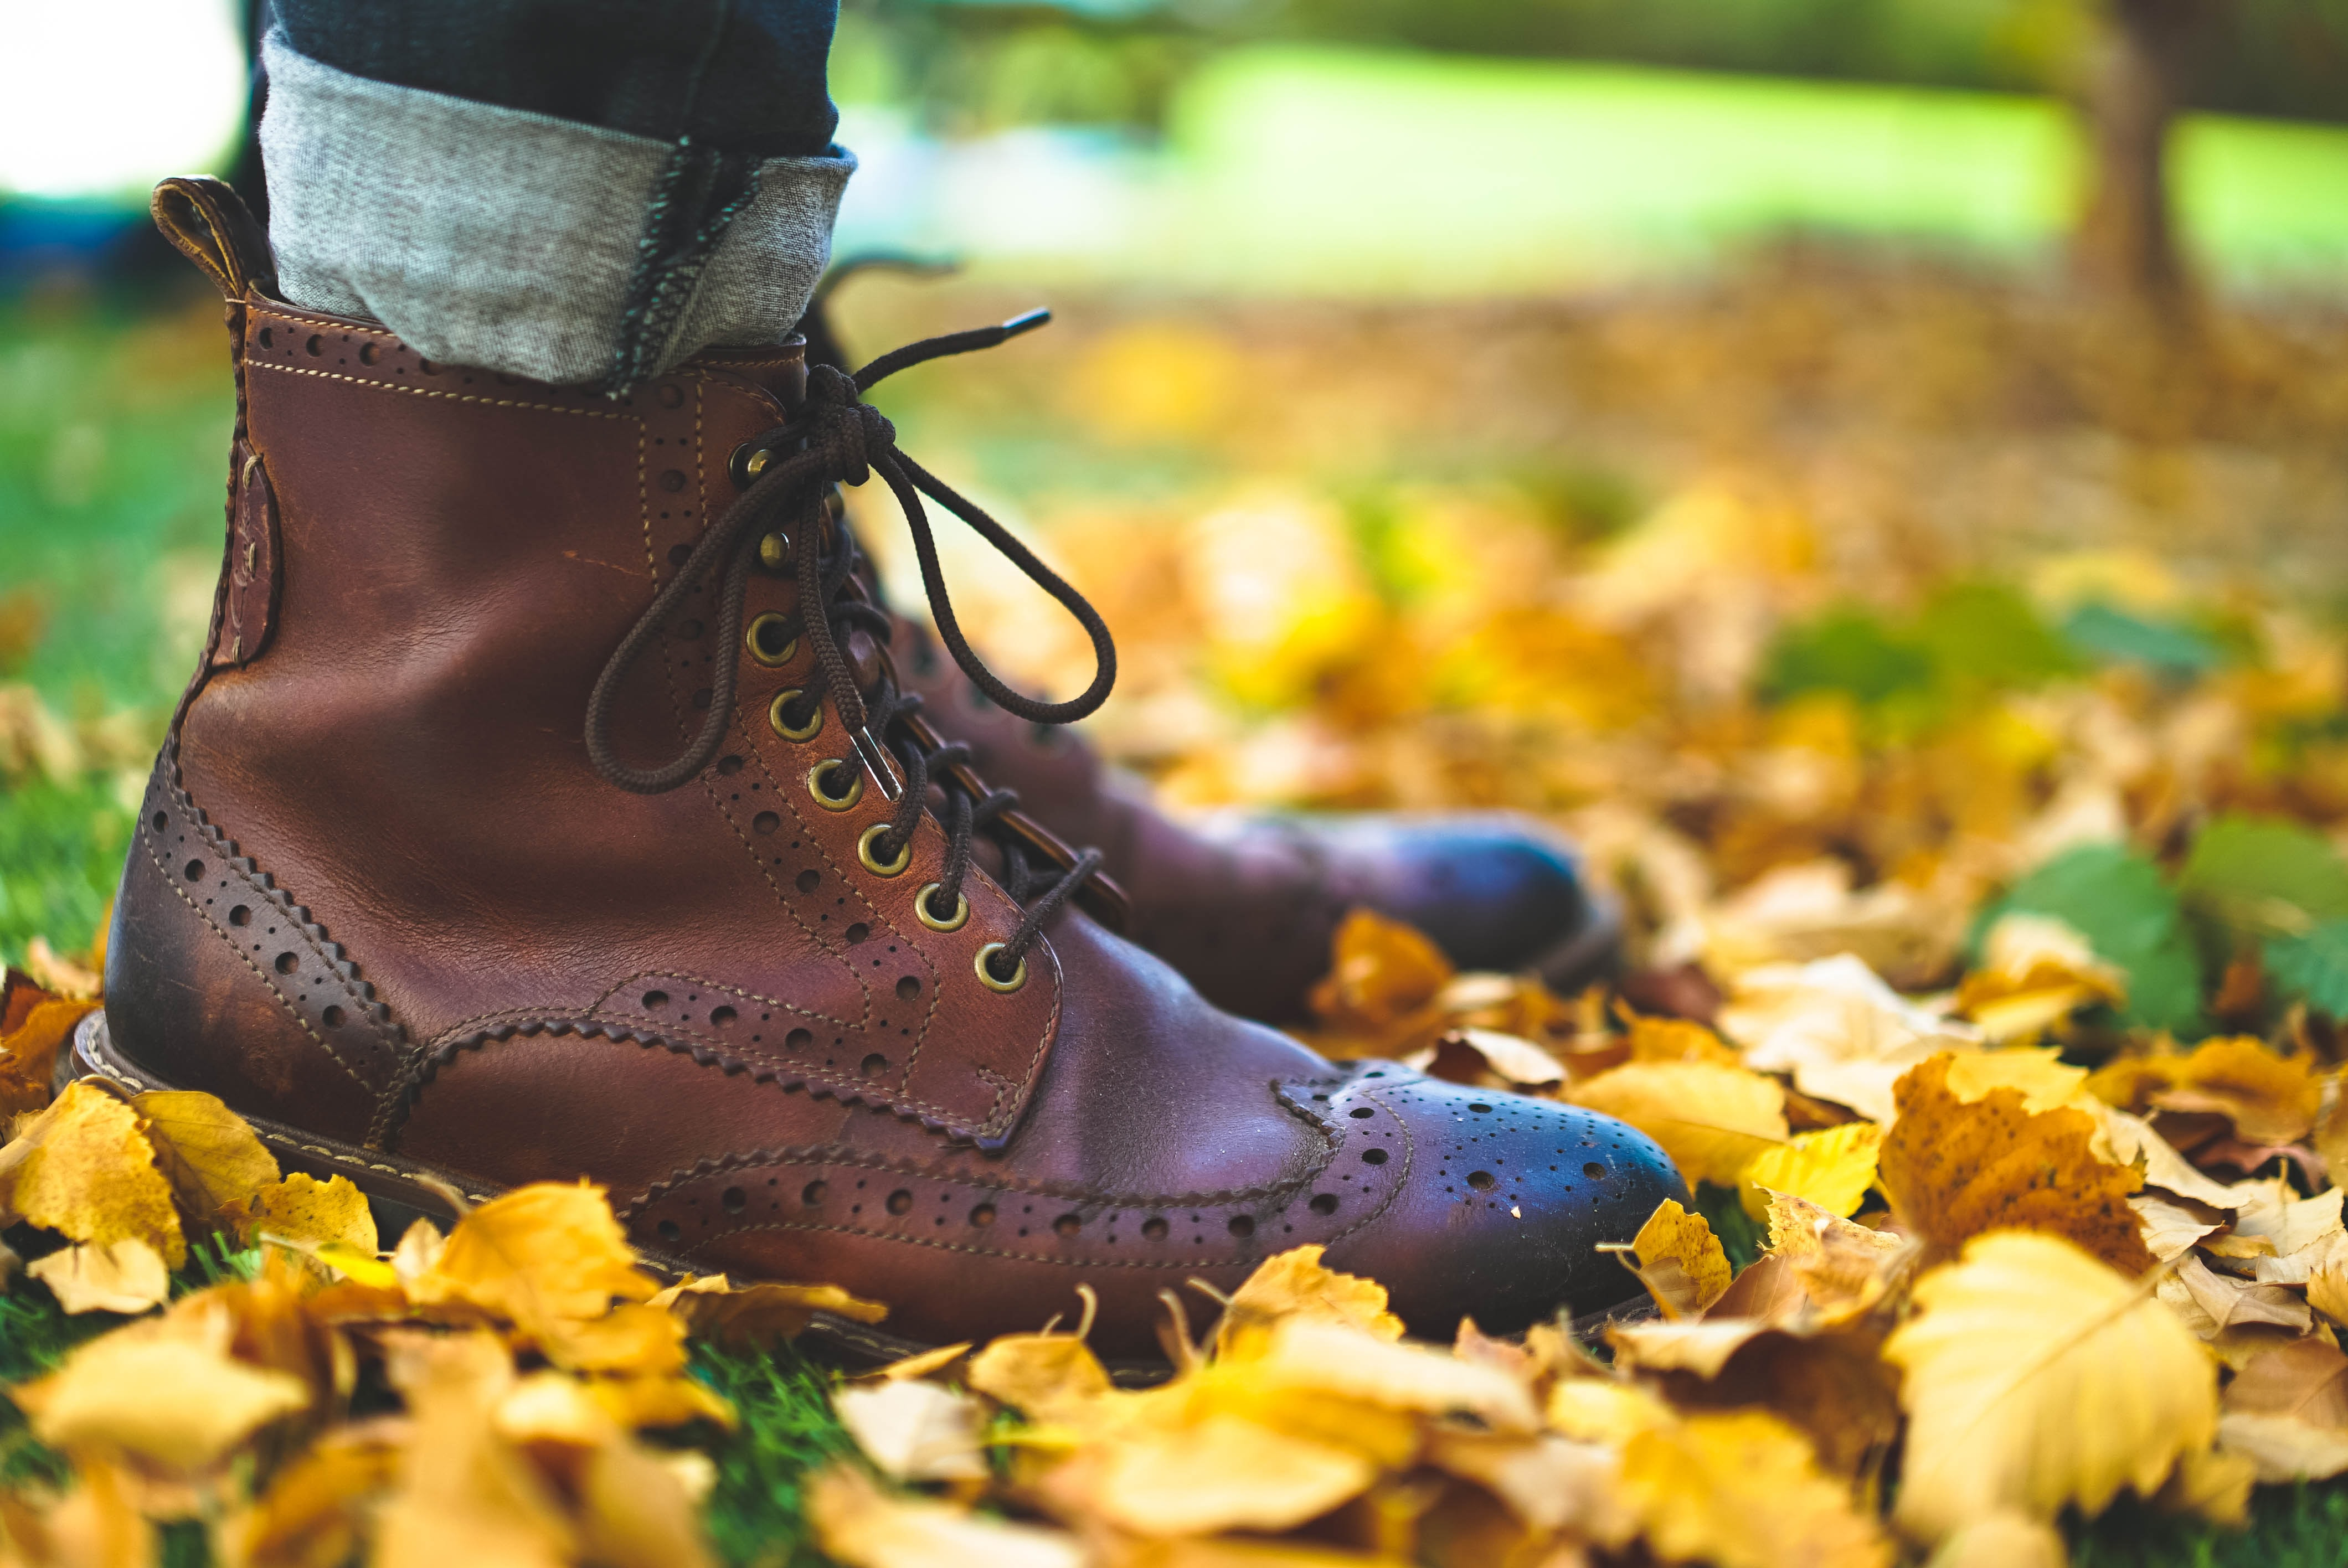 close up photo of person wearing brown leather boots